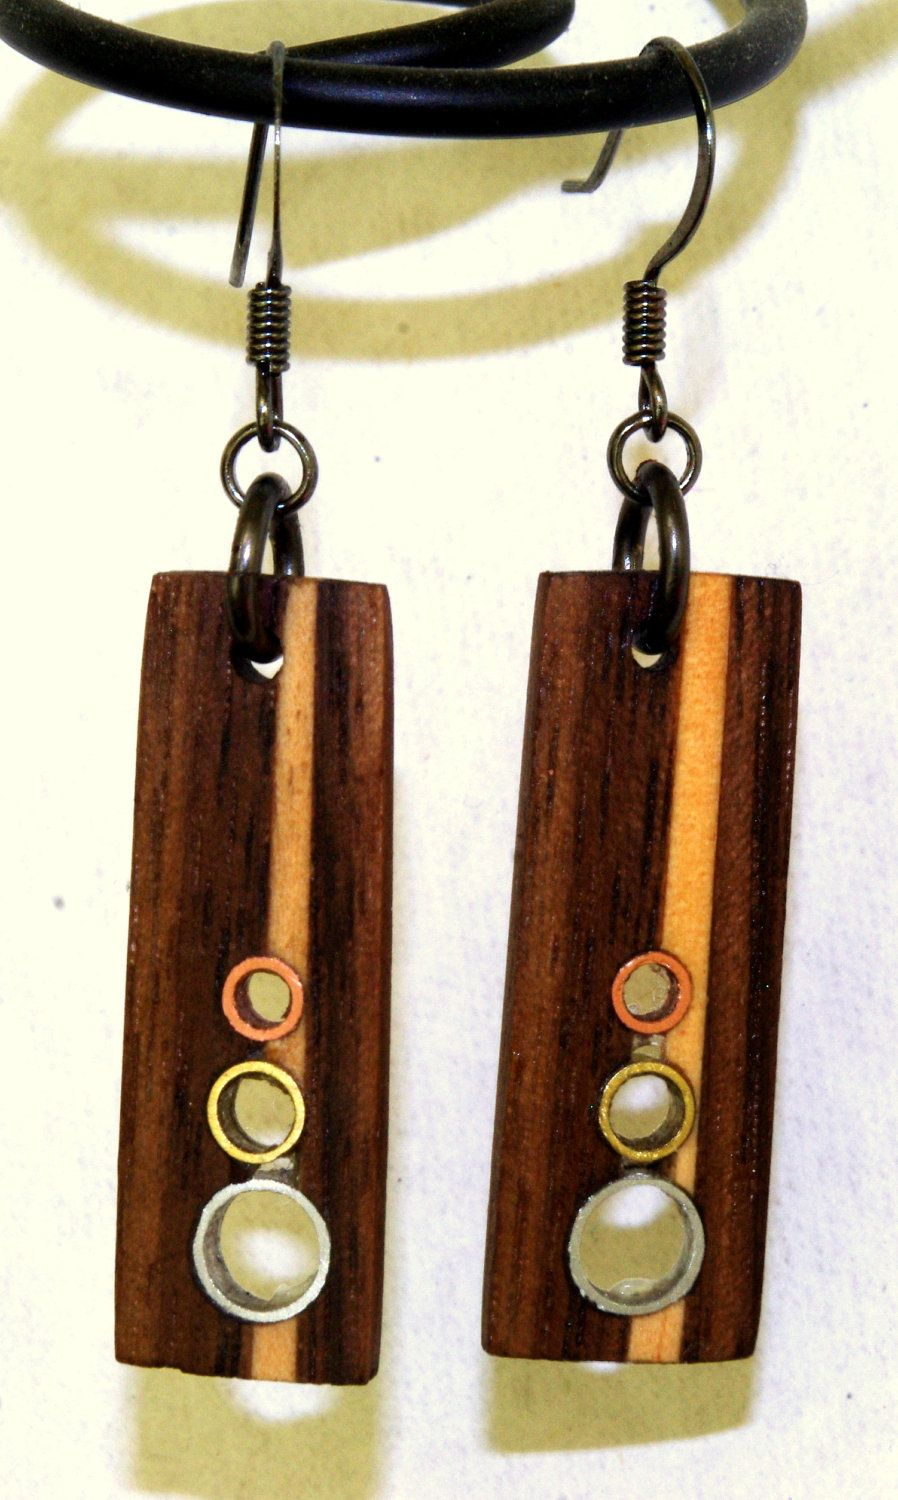 Learn How To Make Wooden Jewelry On Your Own Designs